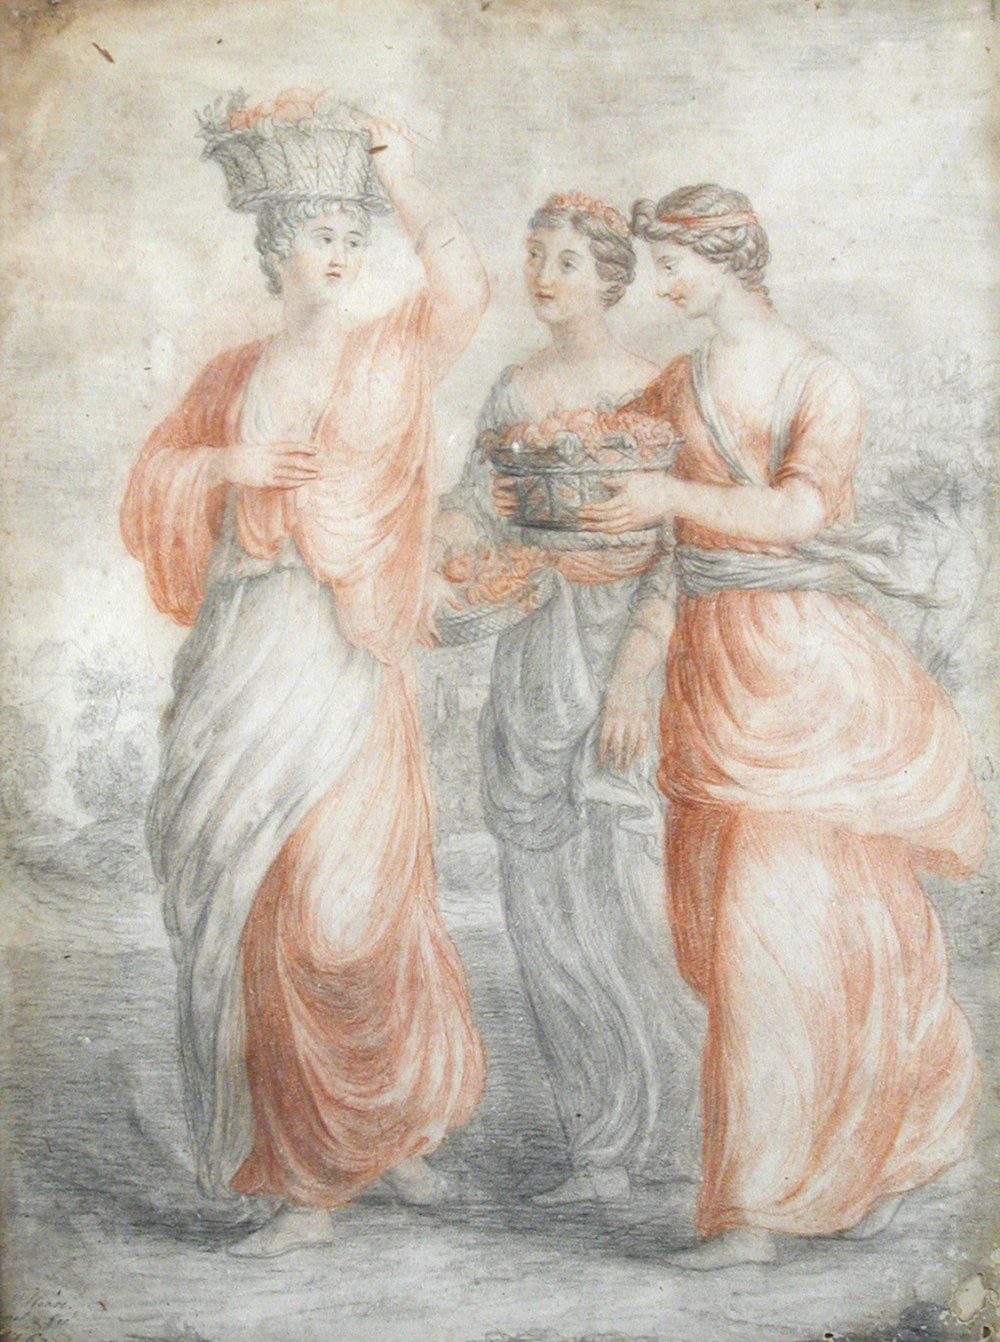 Lot 483 - William Hoare, RA (British, 1707-1782) Three classical maidens carrying baskets of fruit signed